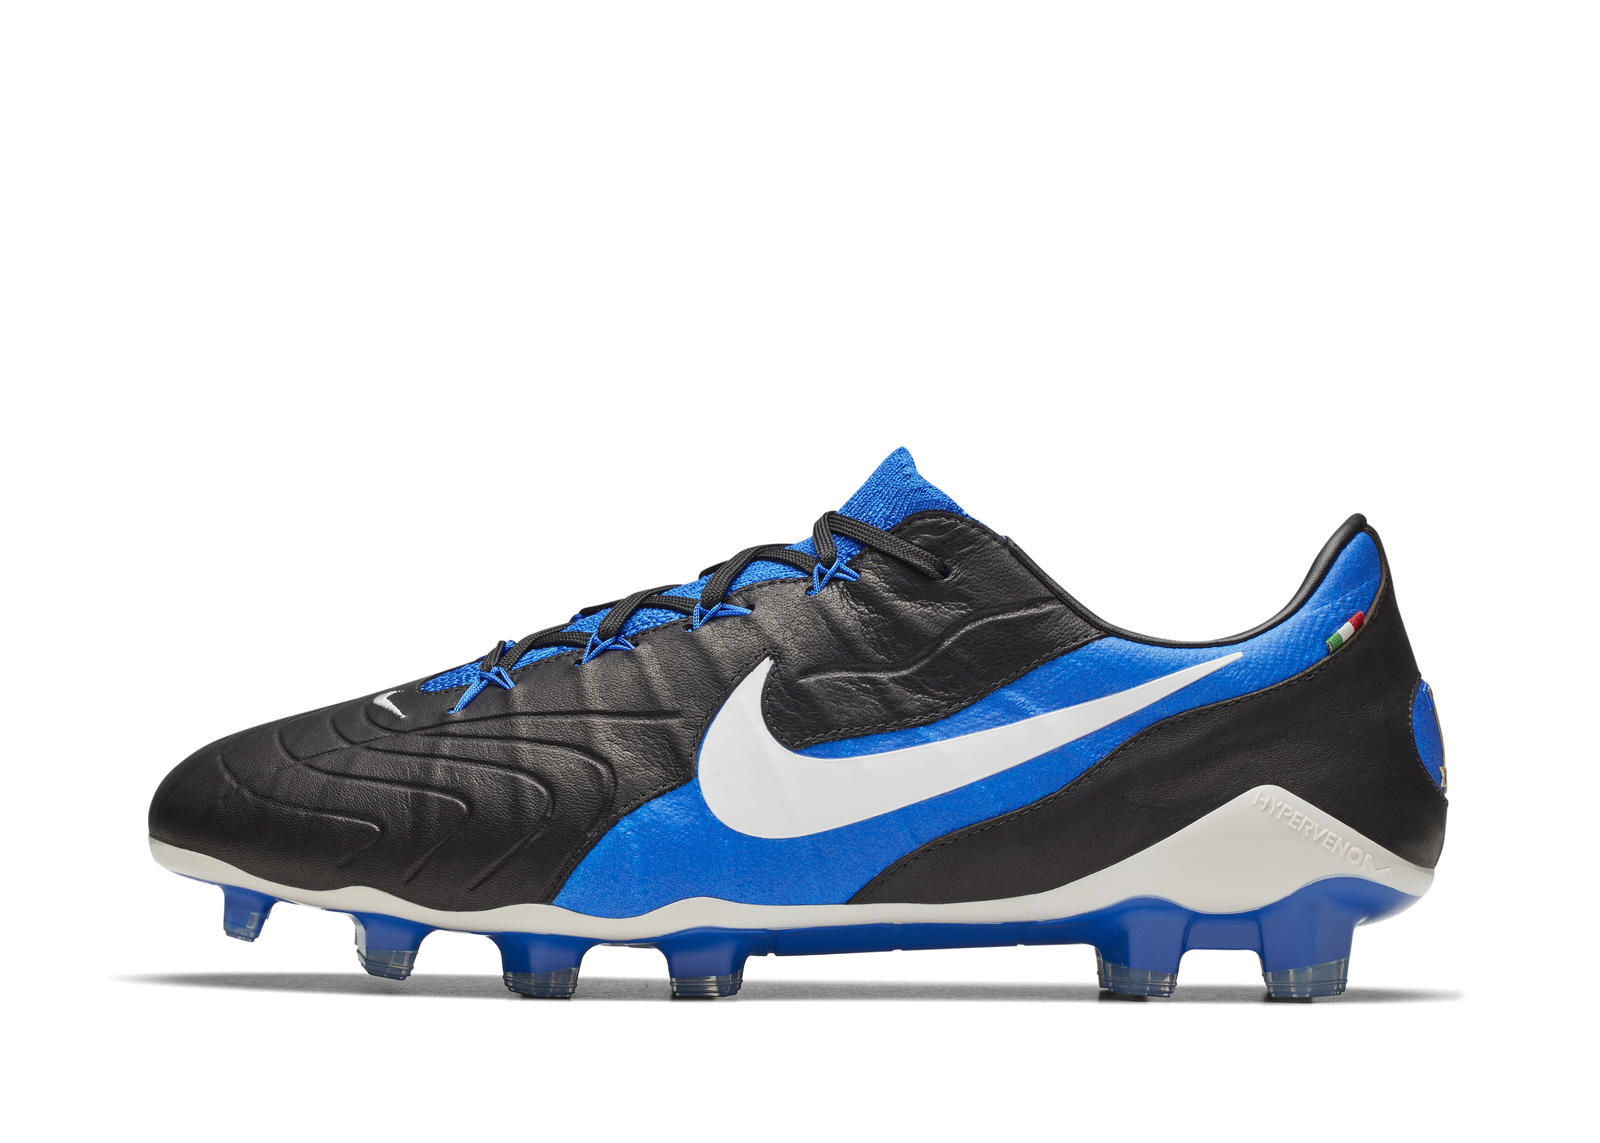 quality design 93b26 579e4 ... Nike has released the Hypervenom GX, which, like last month s Adidas  Predator Precision reboot, features a throwback design with updated  technology.